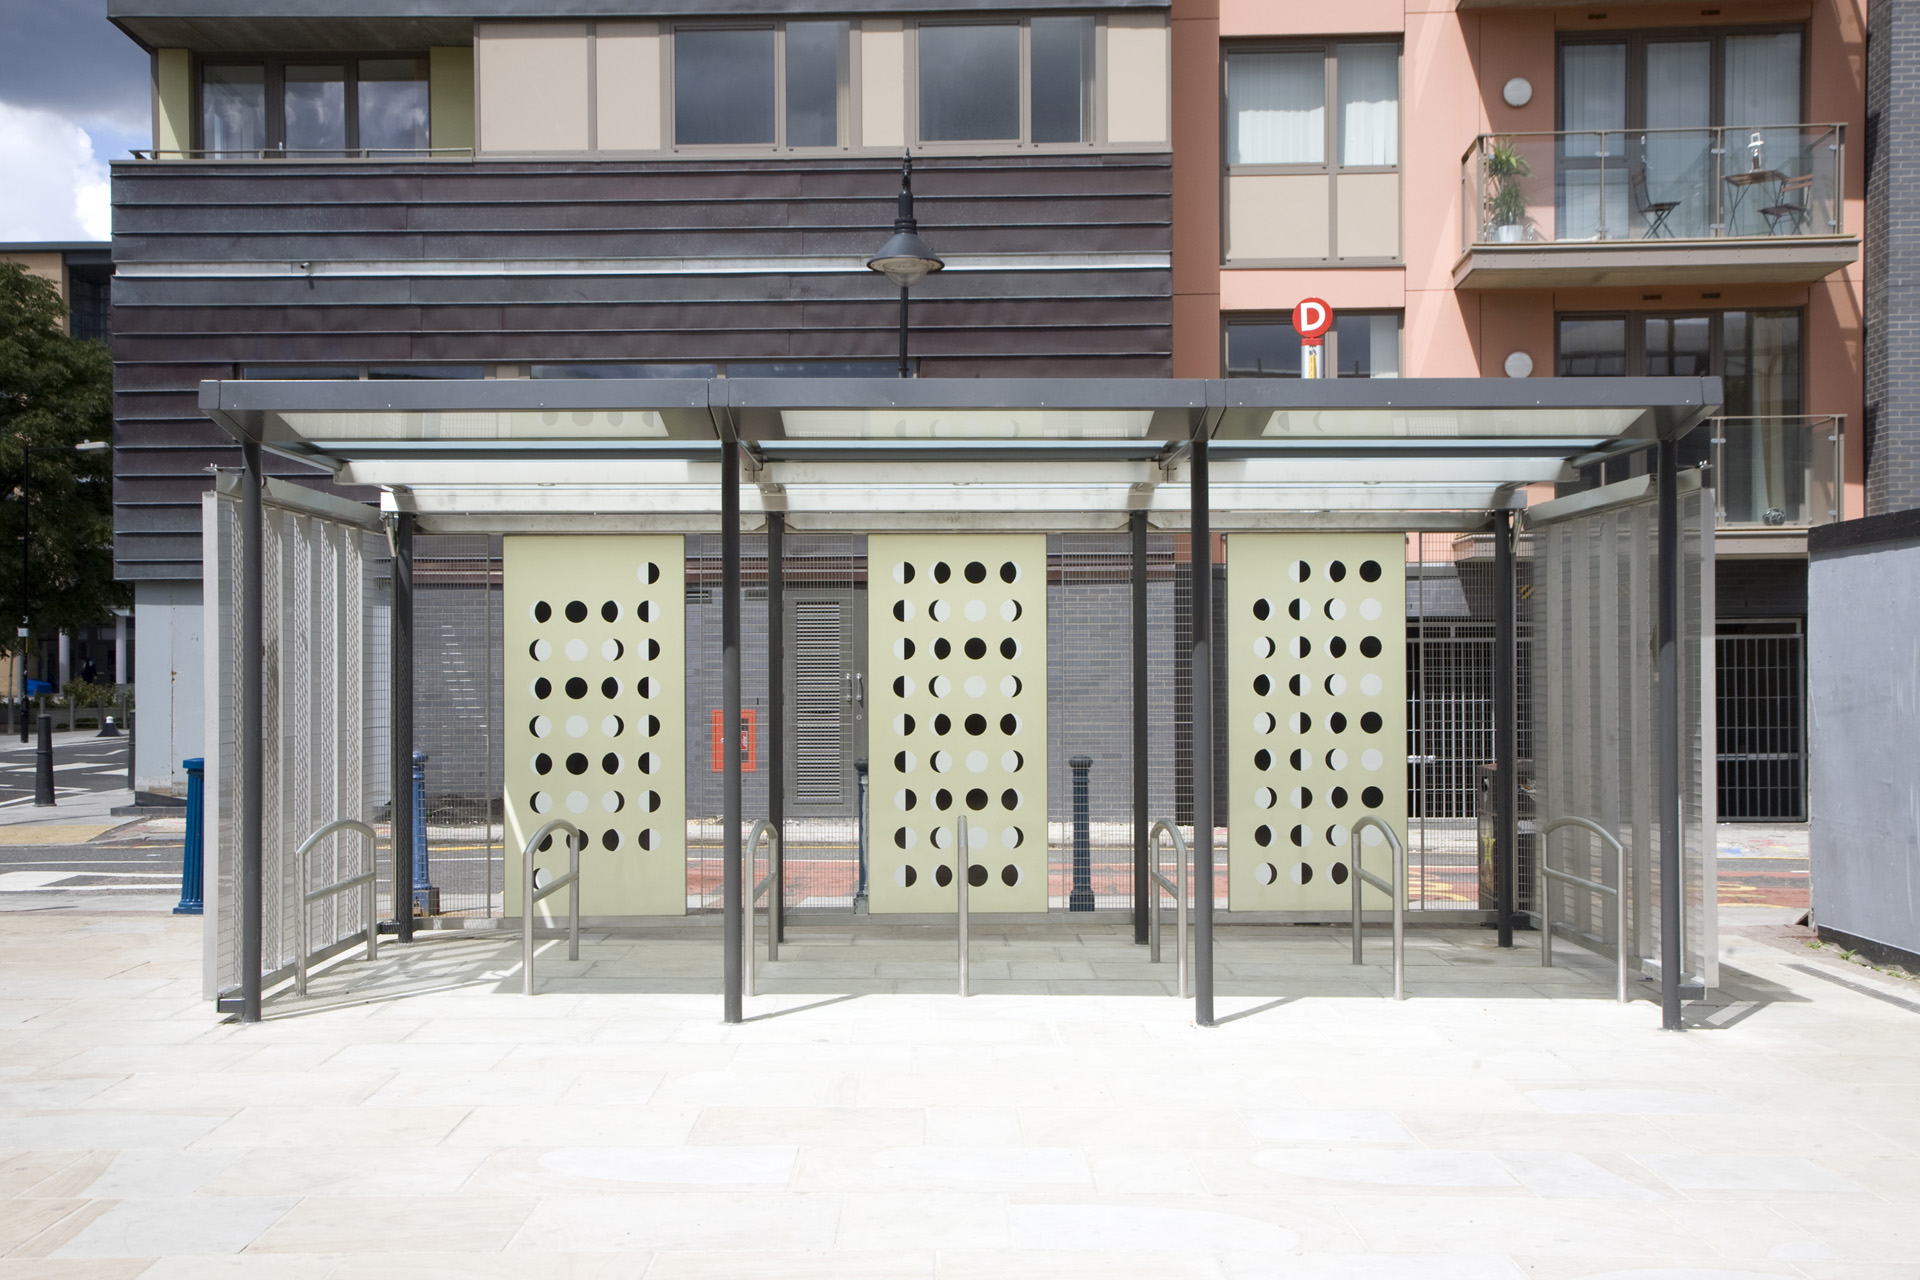 dlr-cycle-parking-04